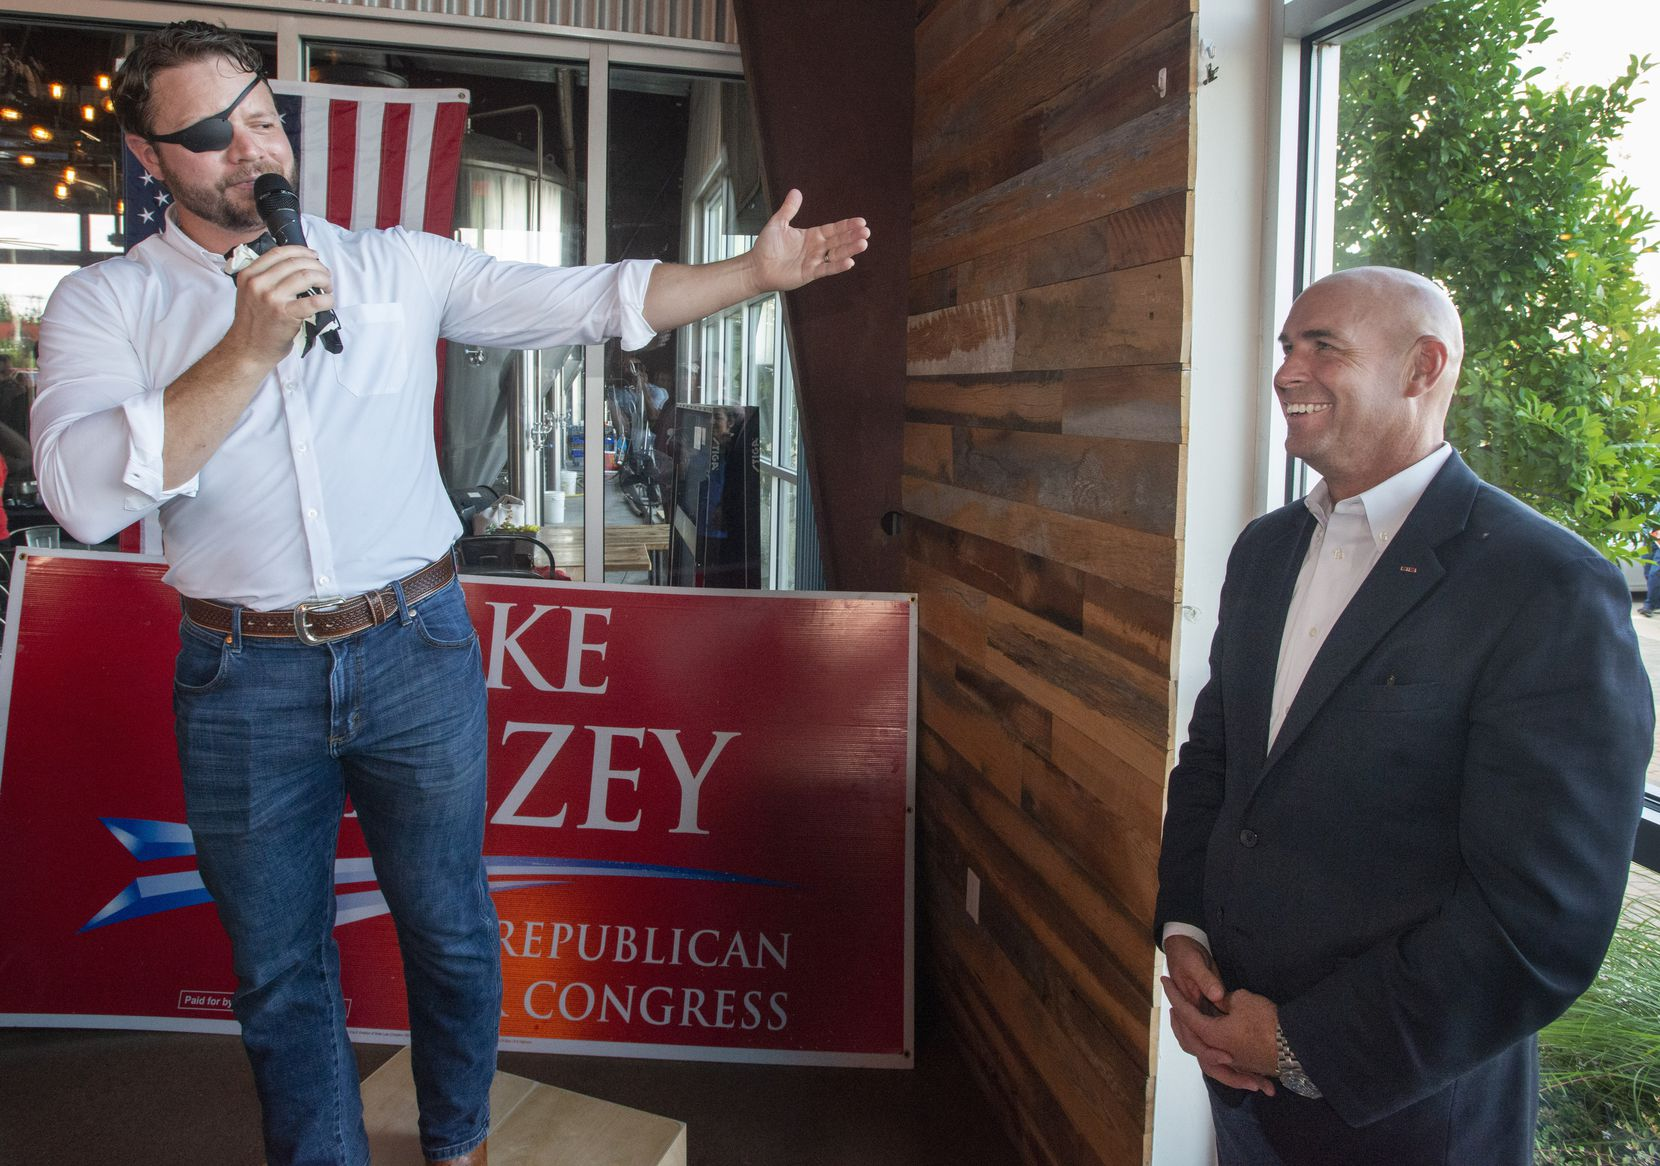 United States Representative for Texas' 2nd congresional district Dan Crenshaw speaks about Congressional District 6 candidate Jake Ellzey during an evening fundraiser at Legal Draft in Arlington, Texas on July 14,, 2021. (Robert W. Hart/Special Contributor)